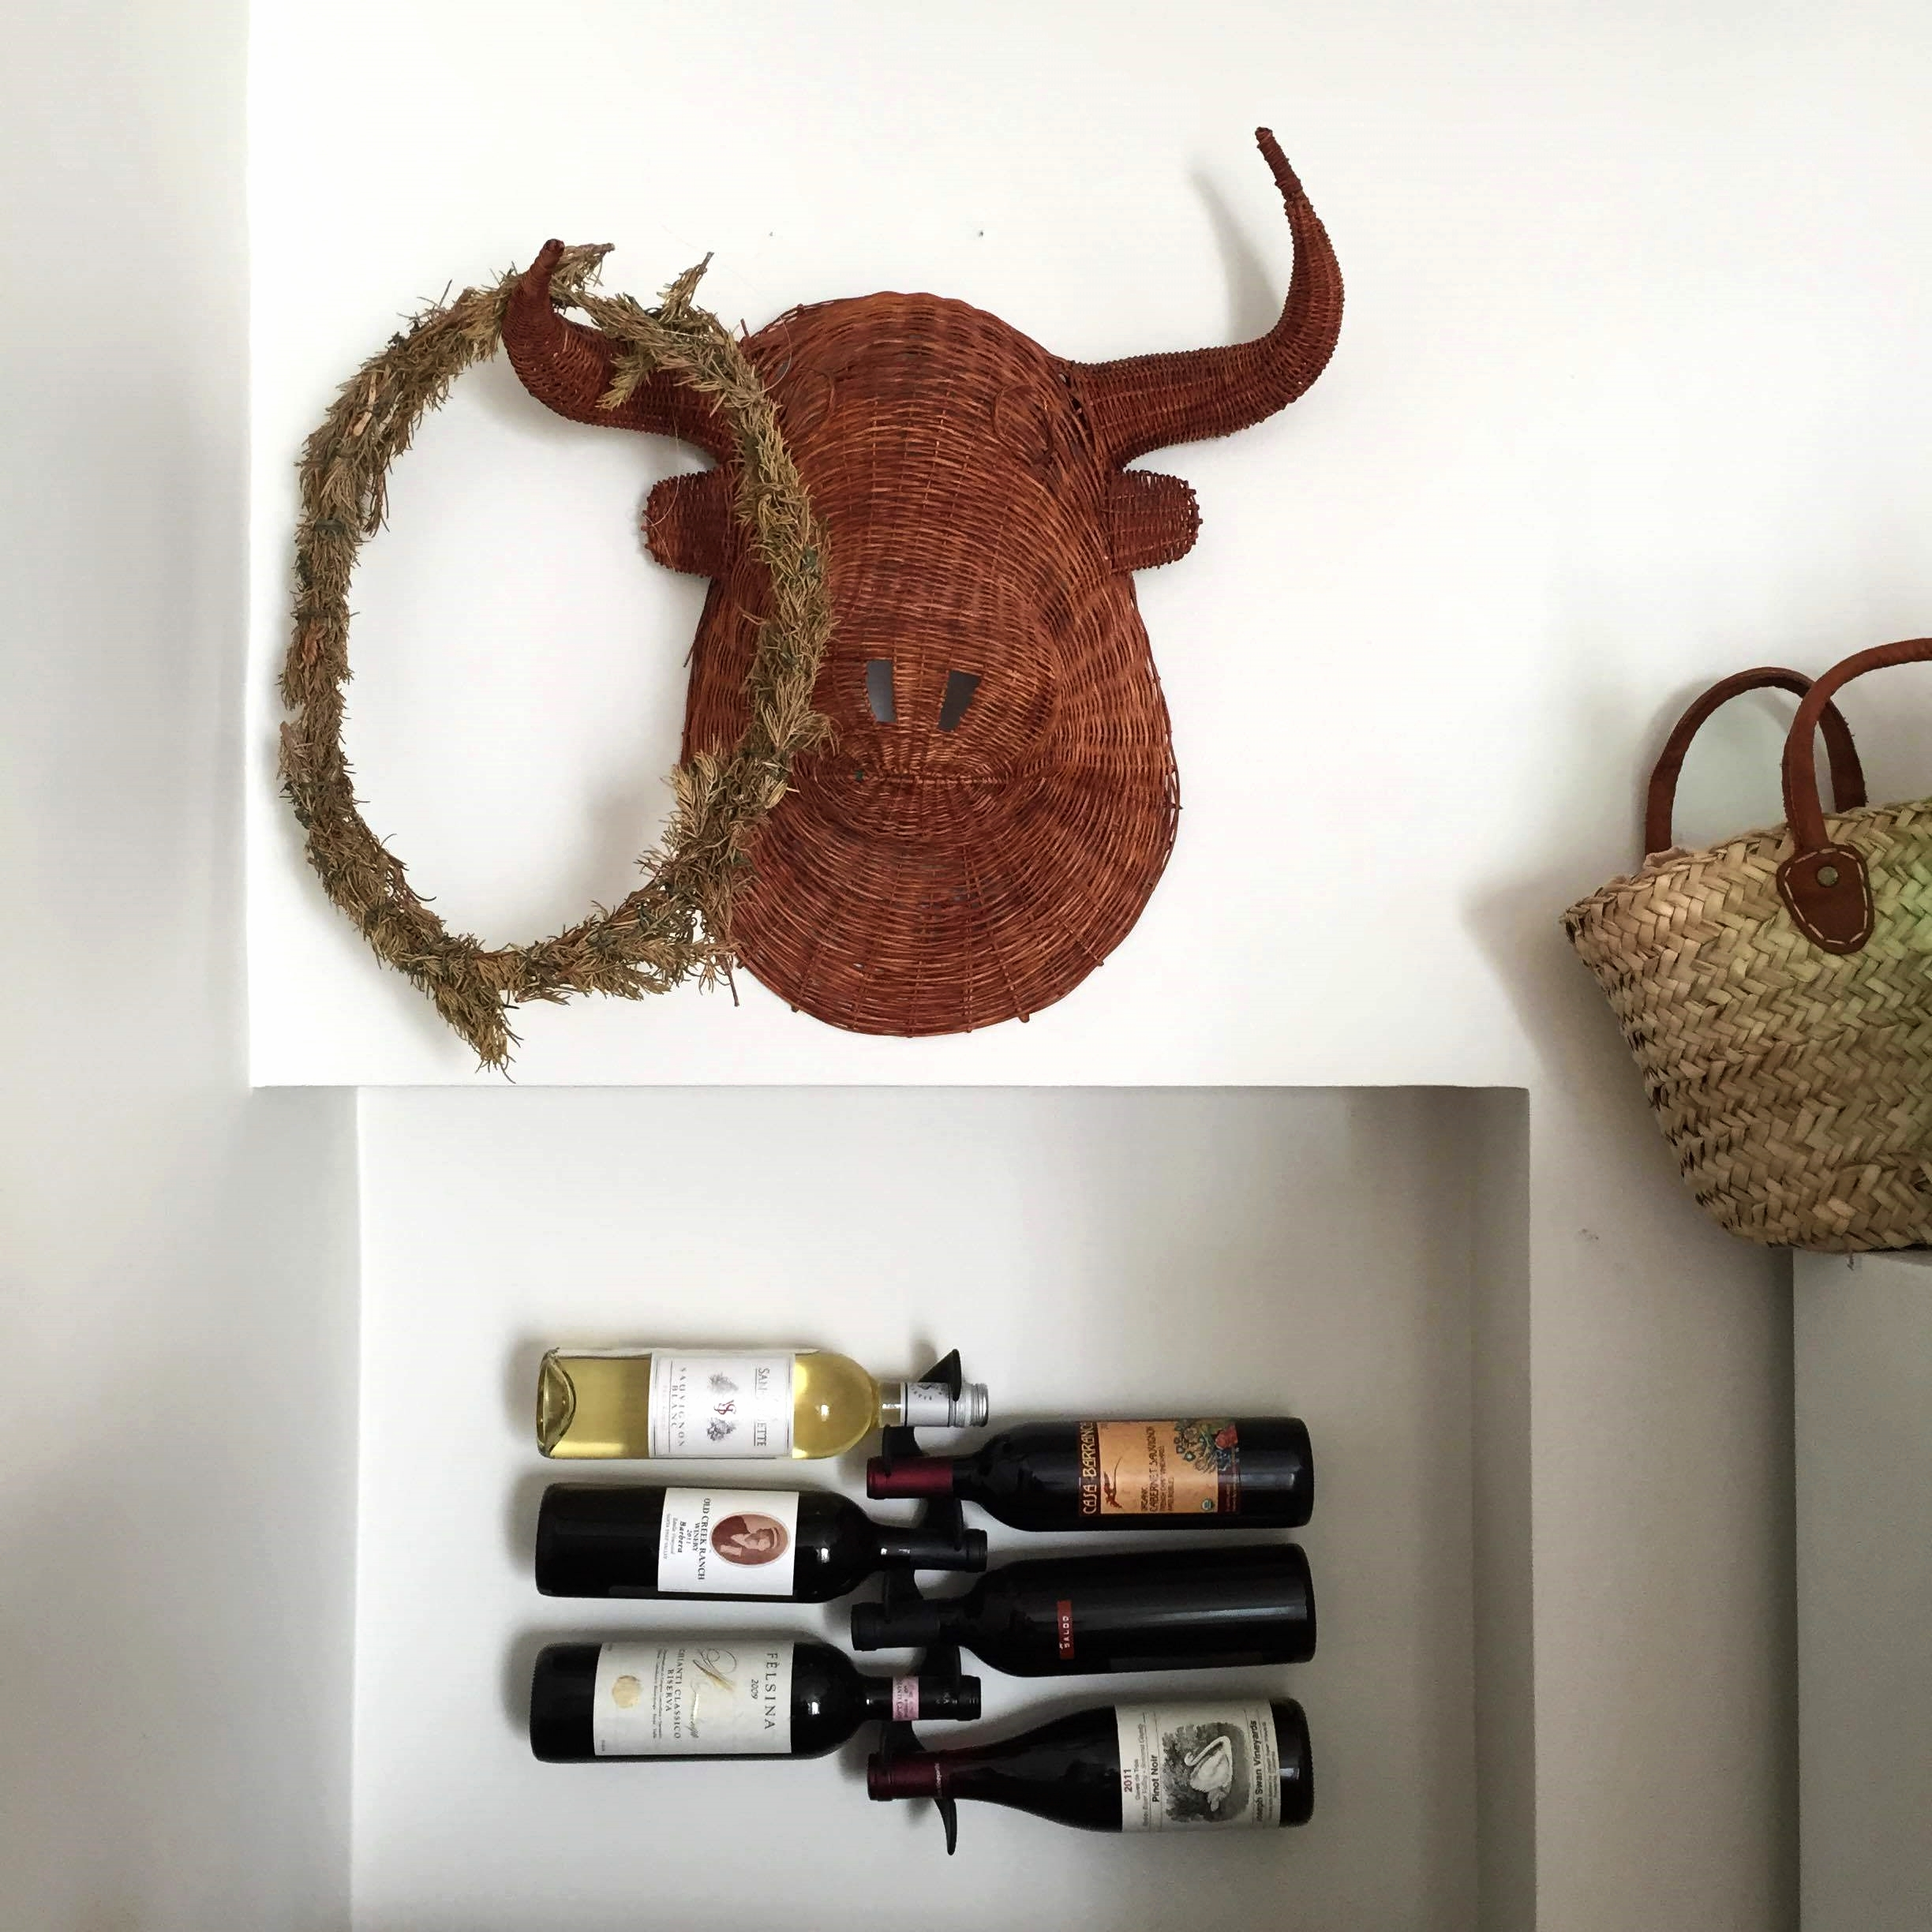 A favorite home accent: Our wicker bull's head. At some point, I decorated it with a dried rosemary wreath from our wedding and the look has stuck. The floating wine rack was a gift of mine to my husband. Continuing the woven theme, I have a weakness for straw baskets.